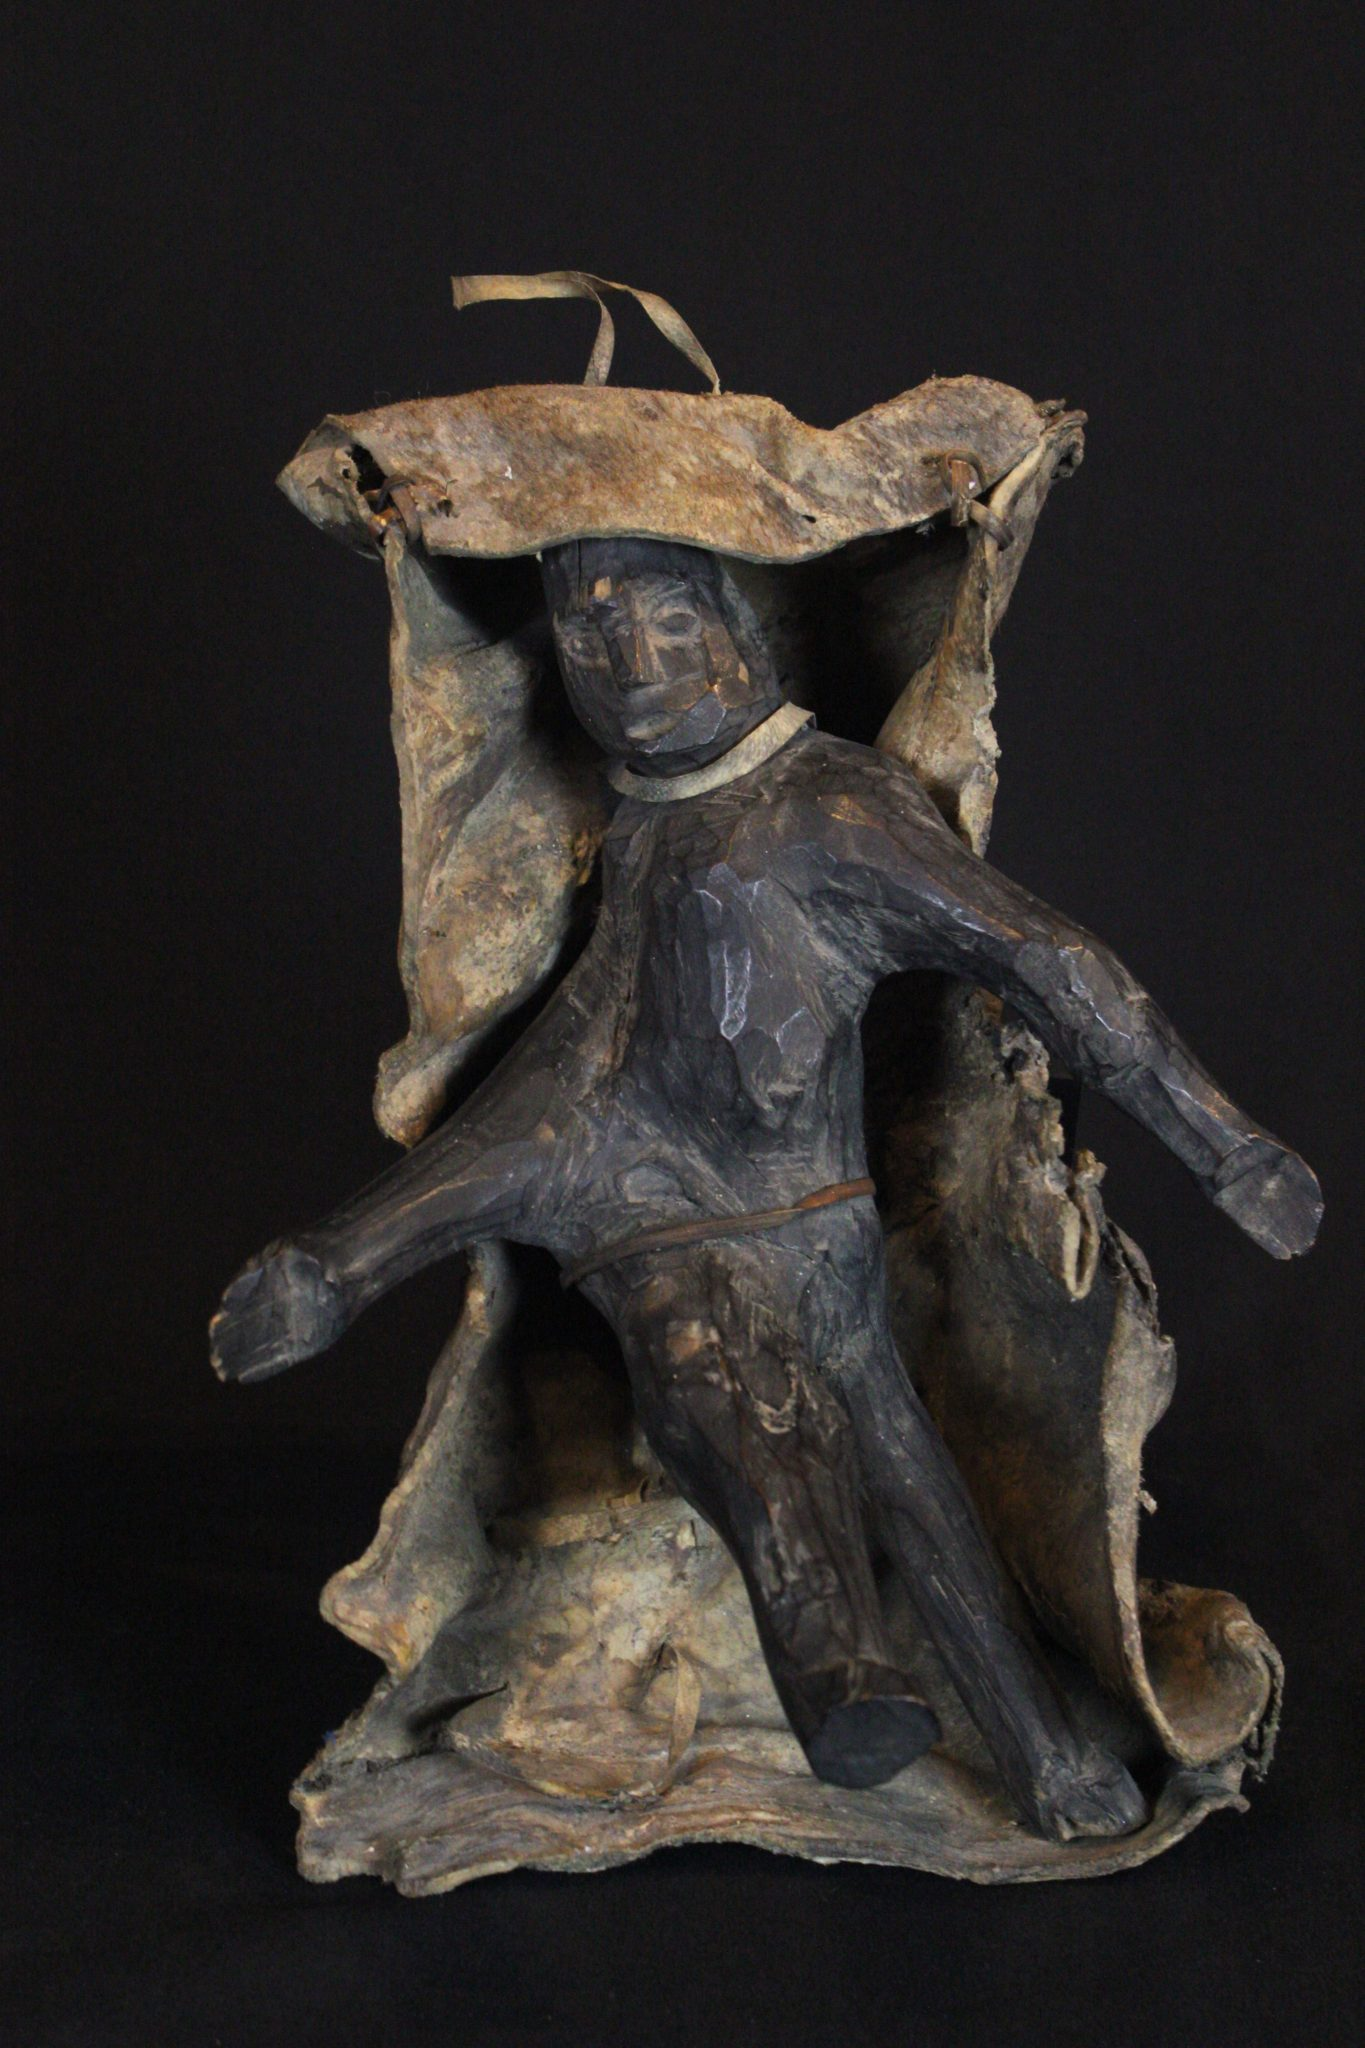 """Shaman Fetish Figure, Kalimantan, Borneo, Indonesia, Dayak tribe Early 20th c, Wood pigmented with soot, animal hide. Hung on the wall in the shaman's house and used for calling spirits and for healing rituals. 12"""" x 8"""" x 6"""", $600."""